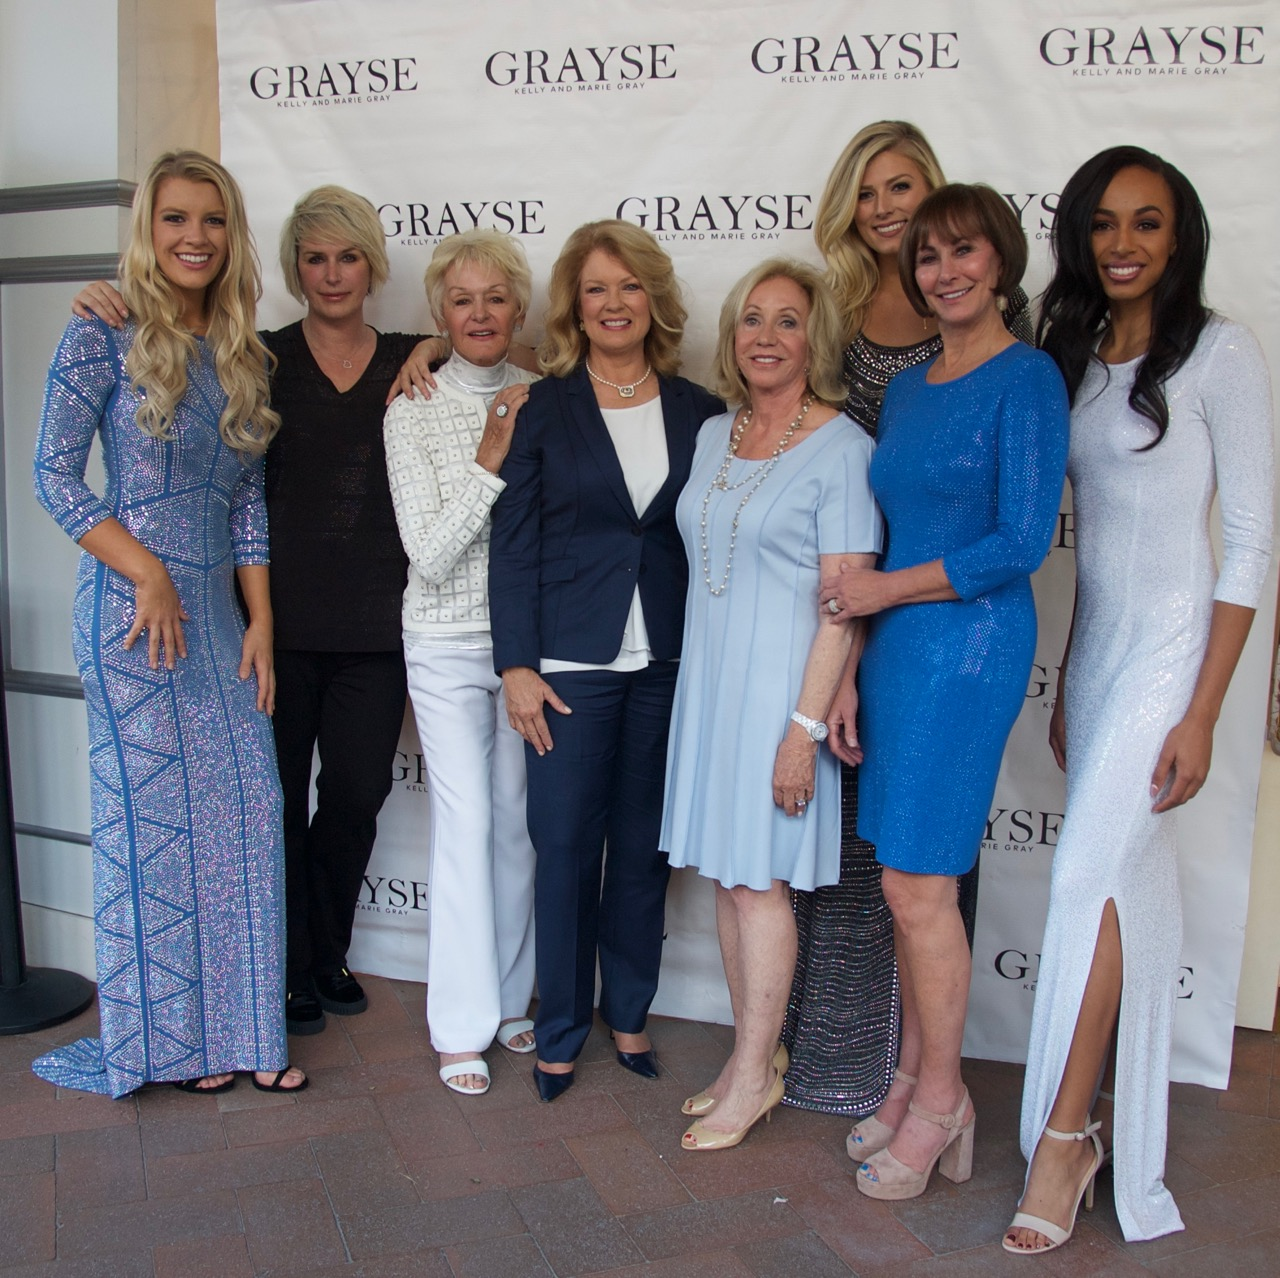 Kelly Gray, Marie Gray, Mary Hart, Susie Spanos, Lynn Weidner and models